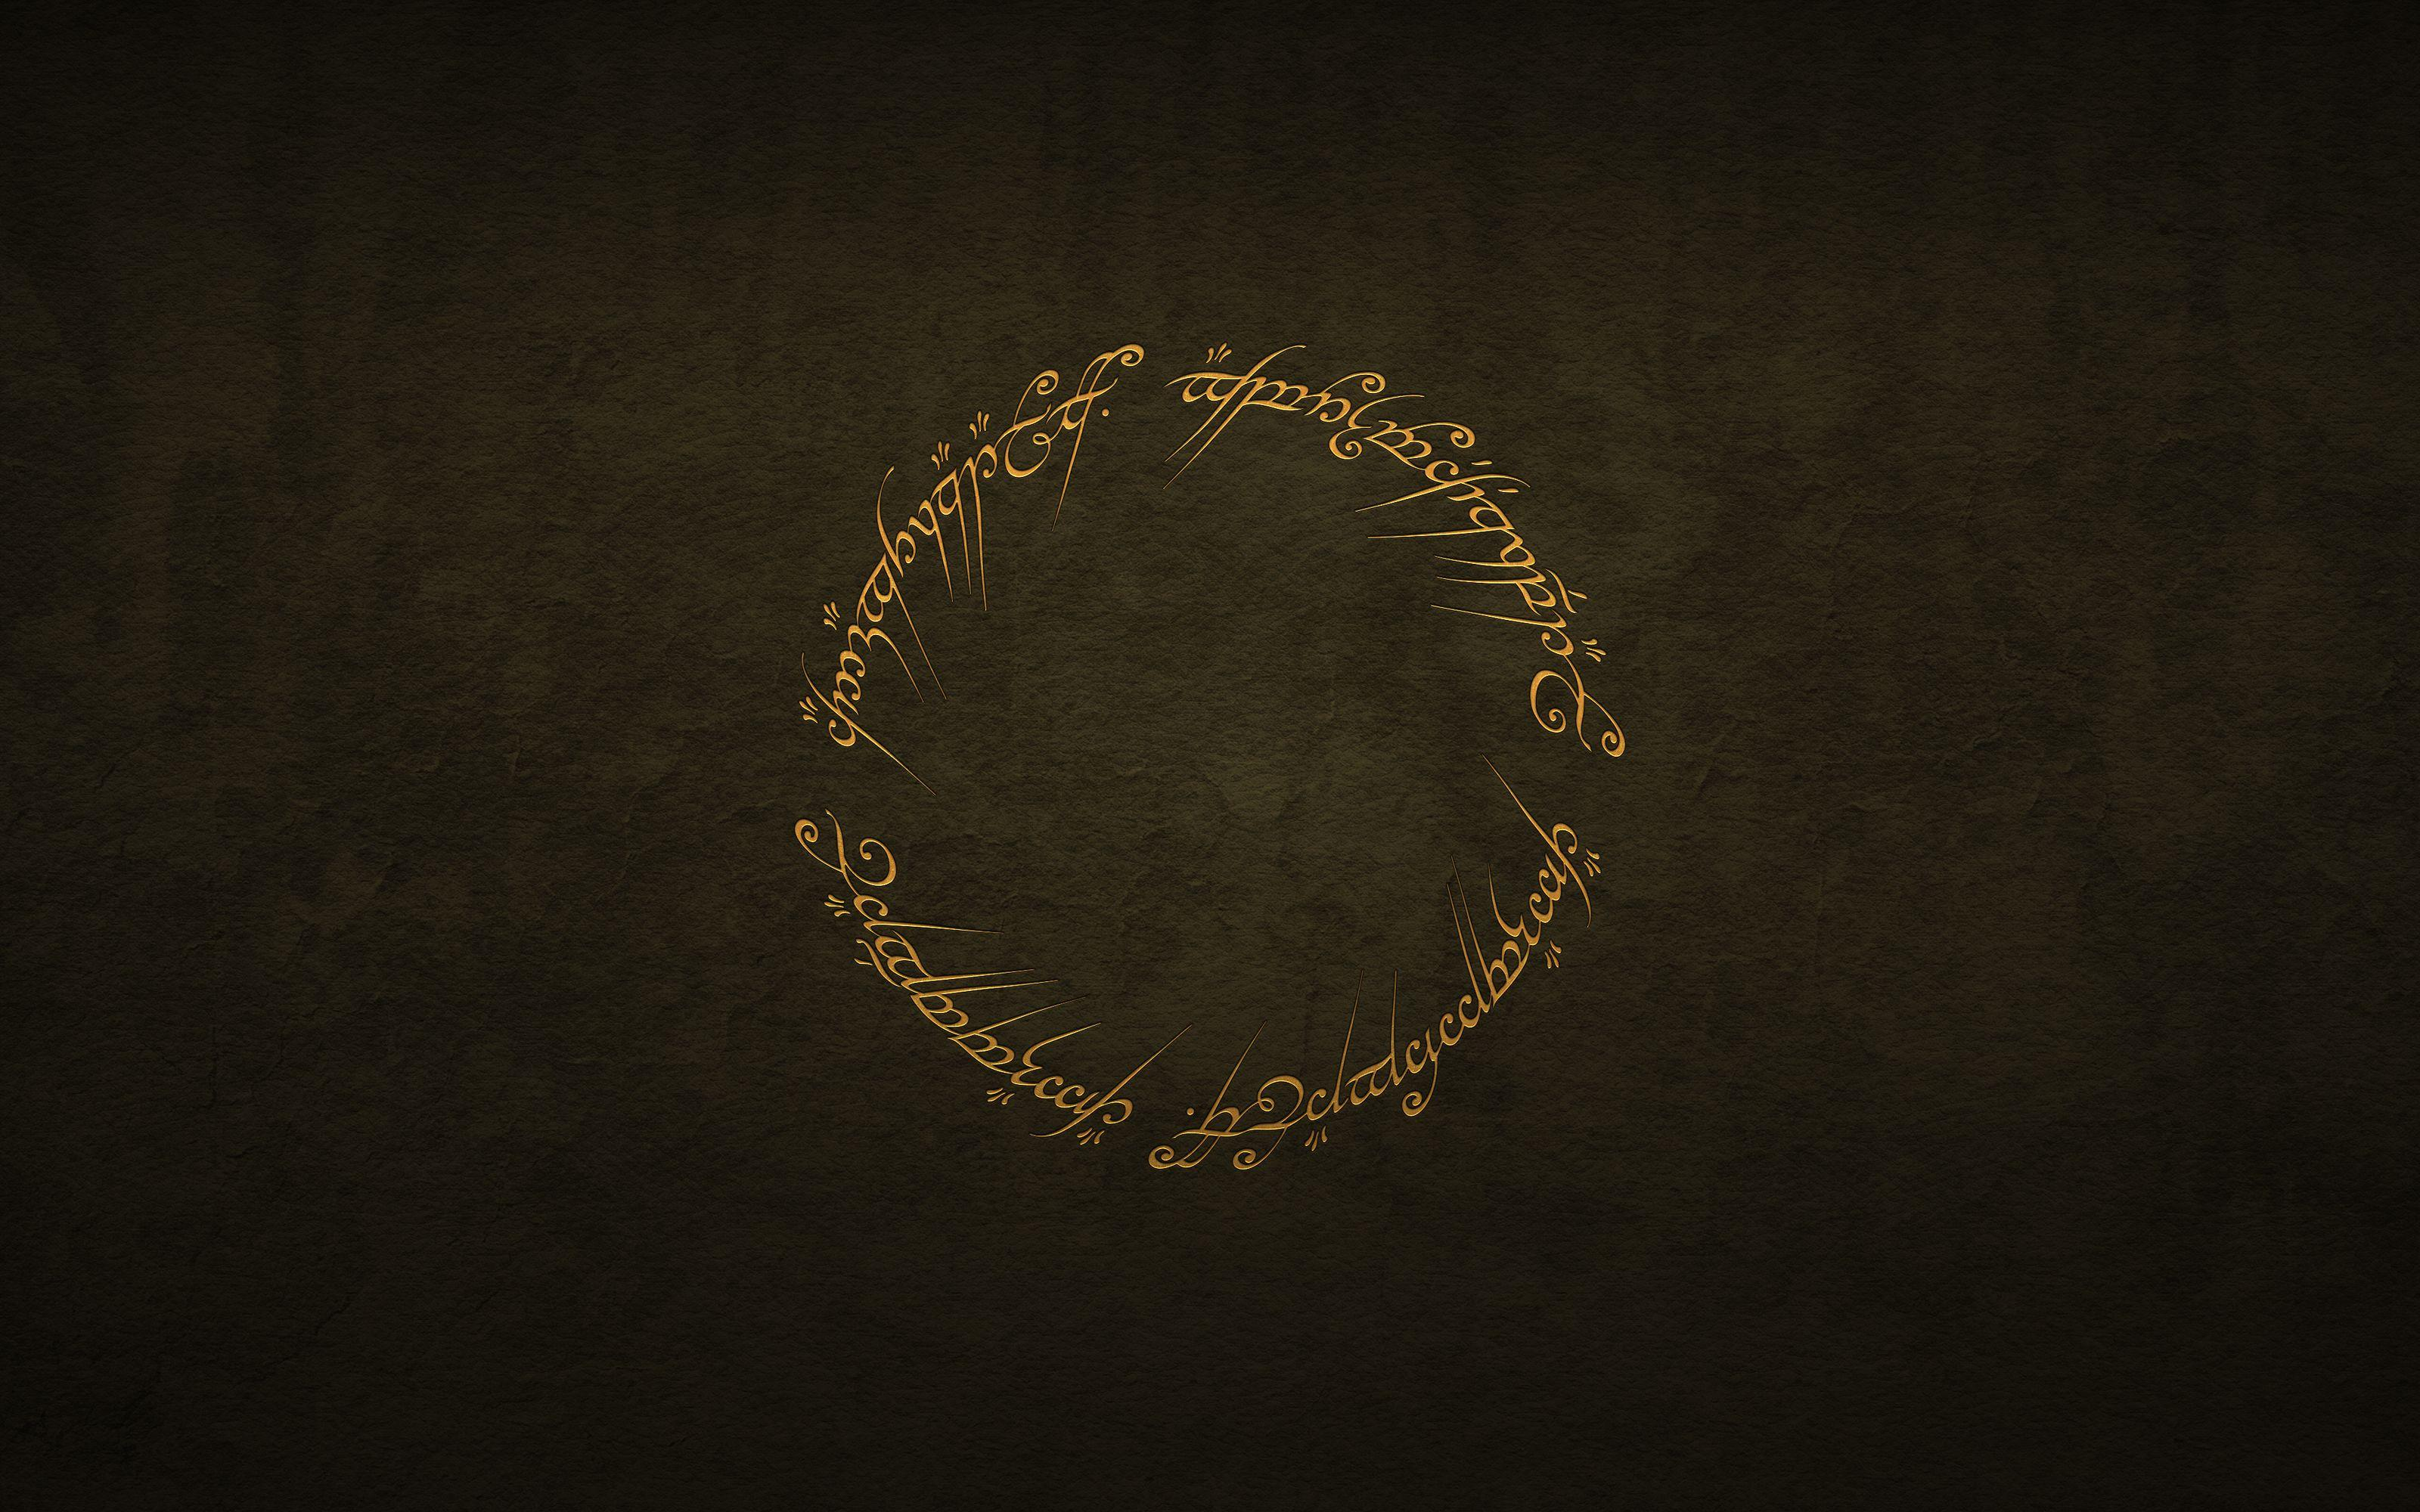 The Lord of the Rings: The Fellowship of the Ring Wallpapers 21